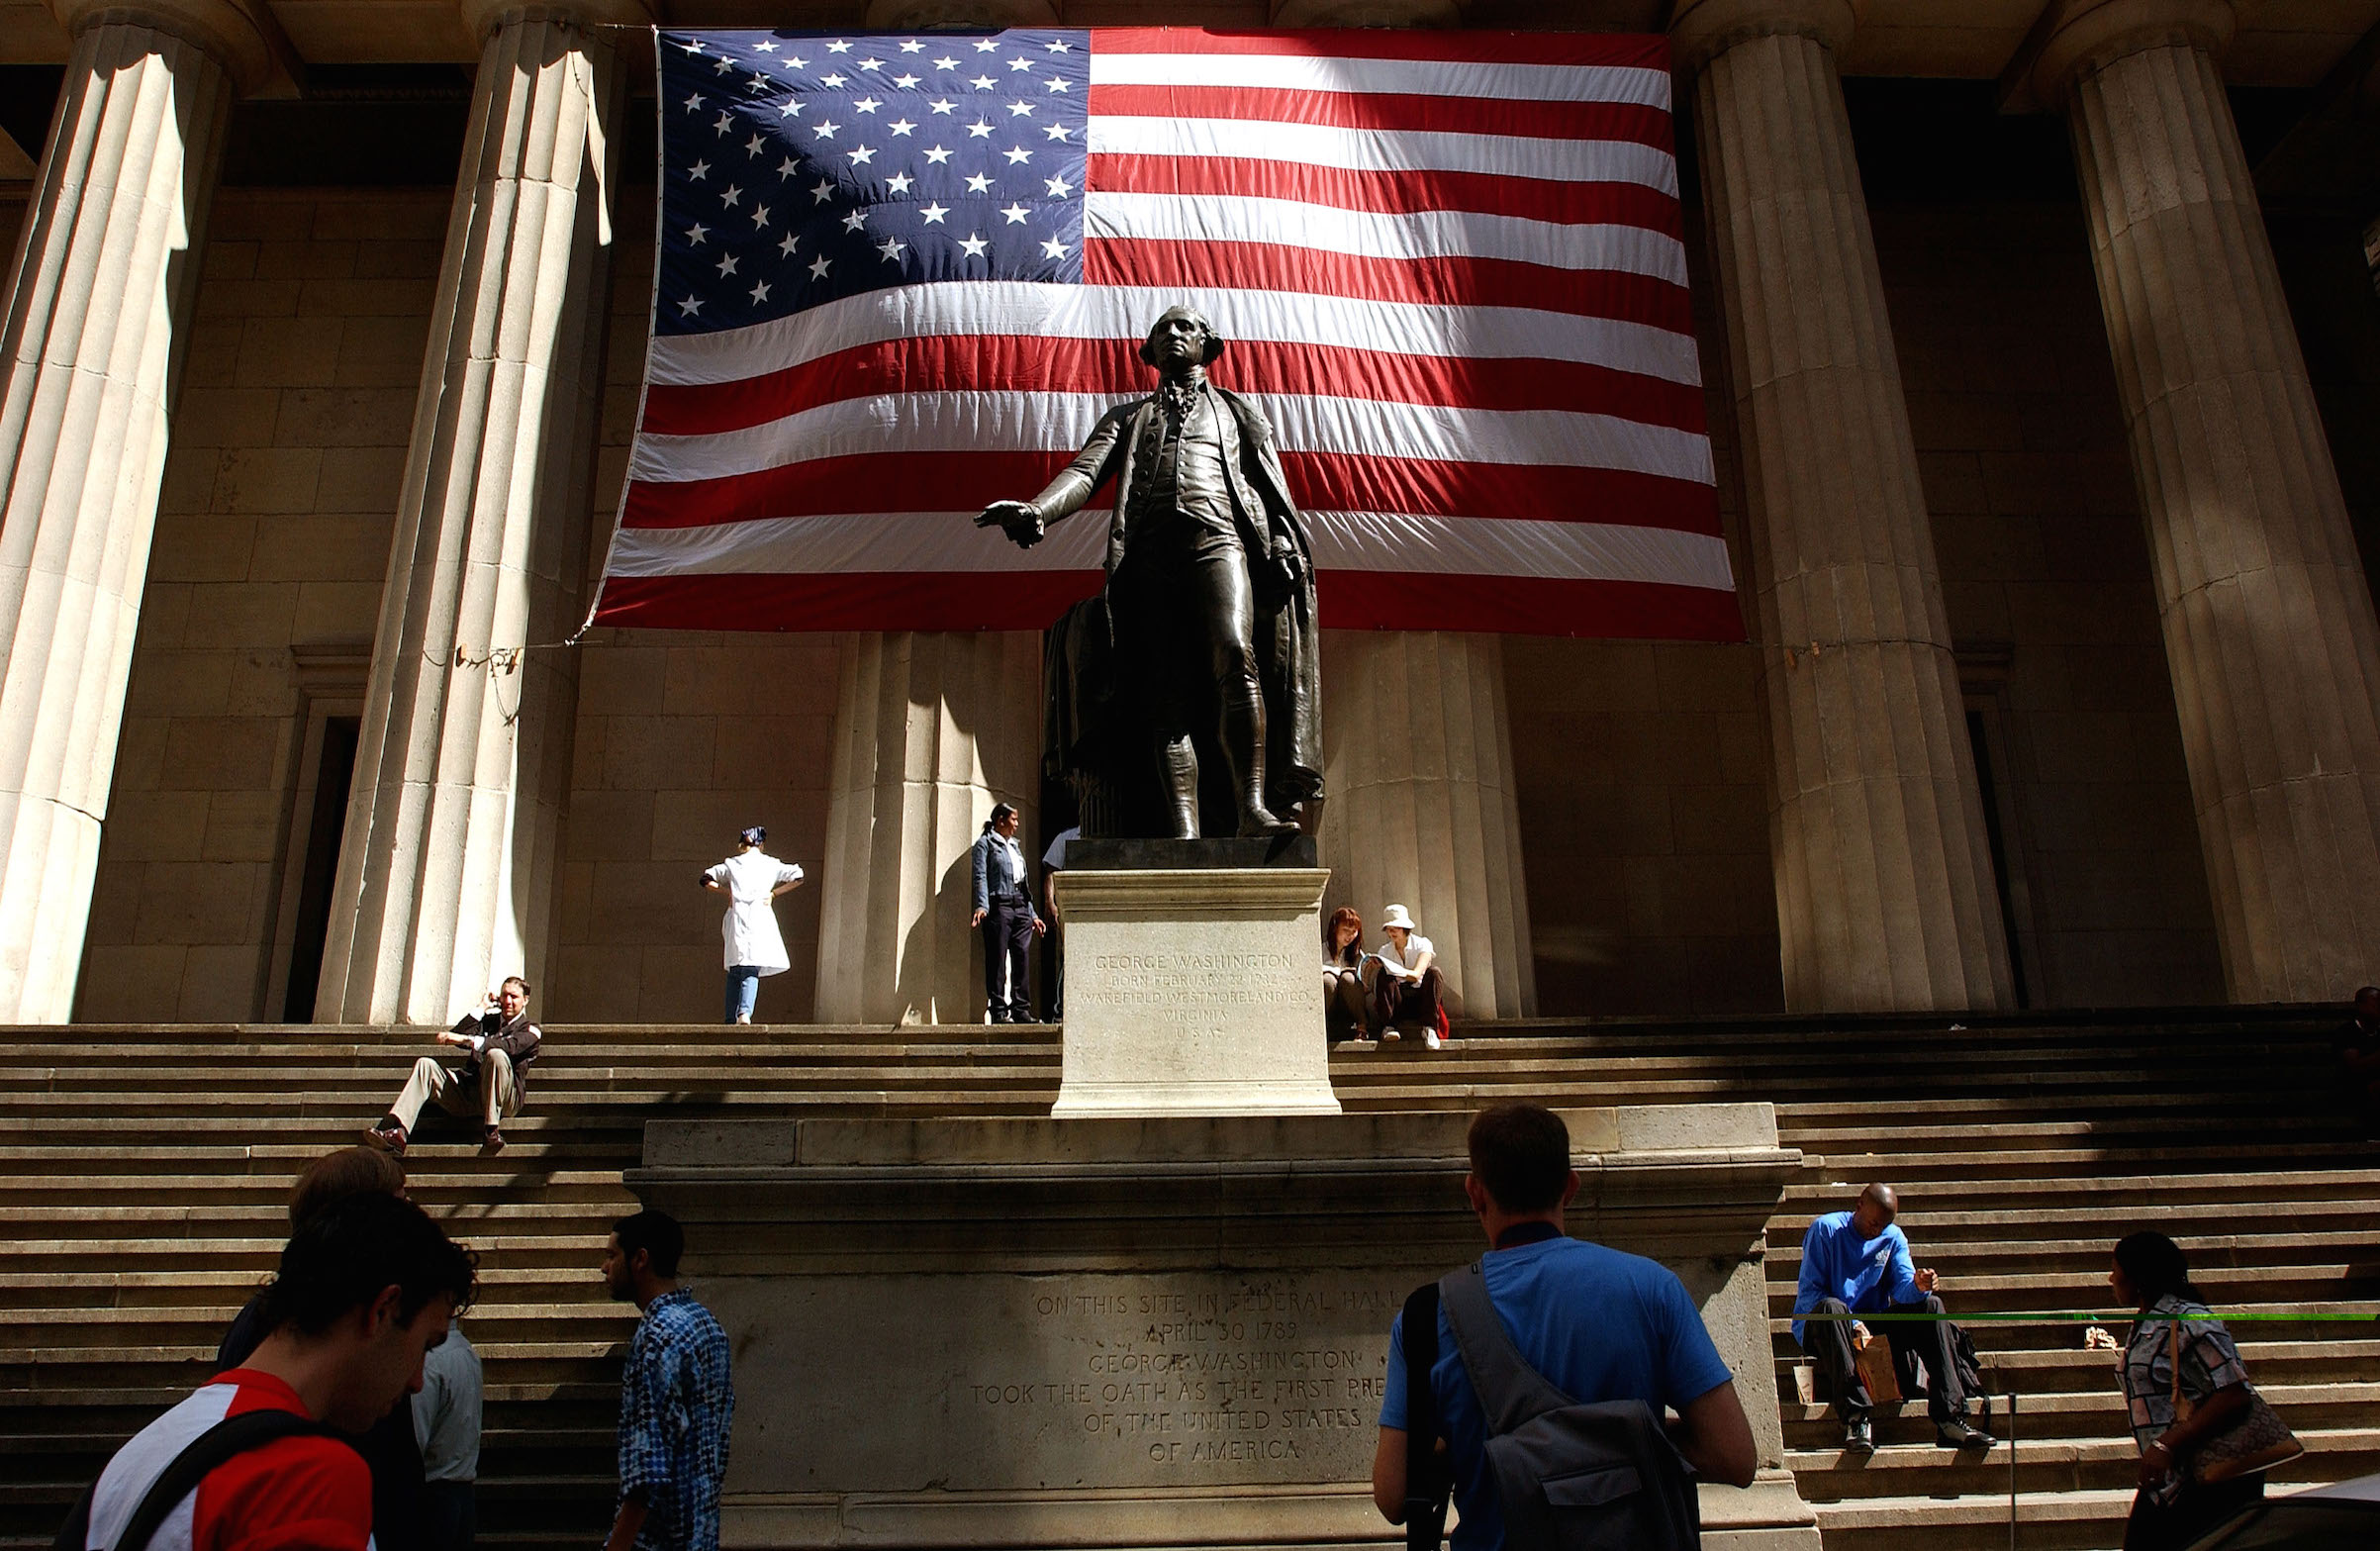 Pedestrians walk around the George Washington statue in front of Federal Hall Sept. 5, 2002 in New York City.